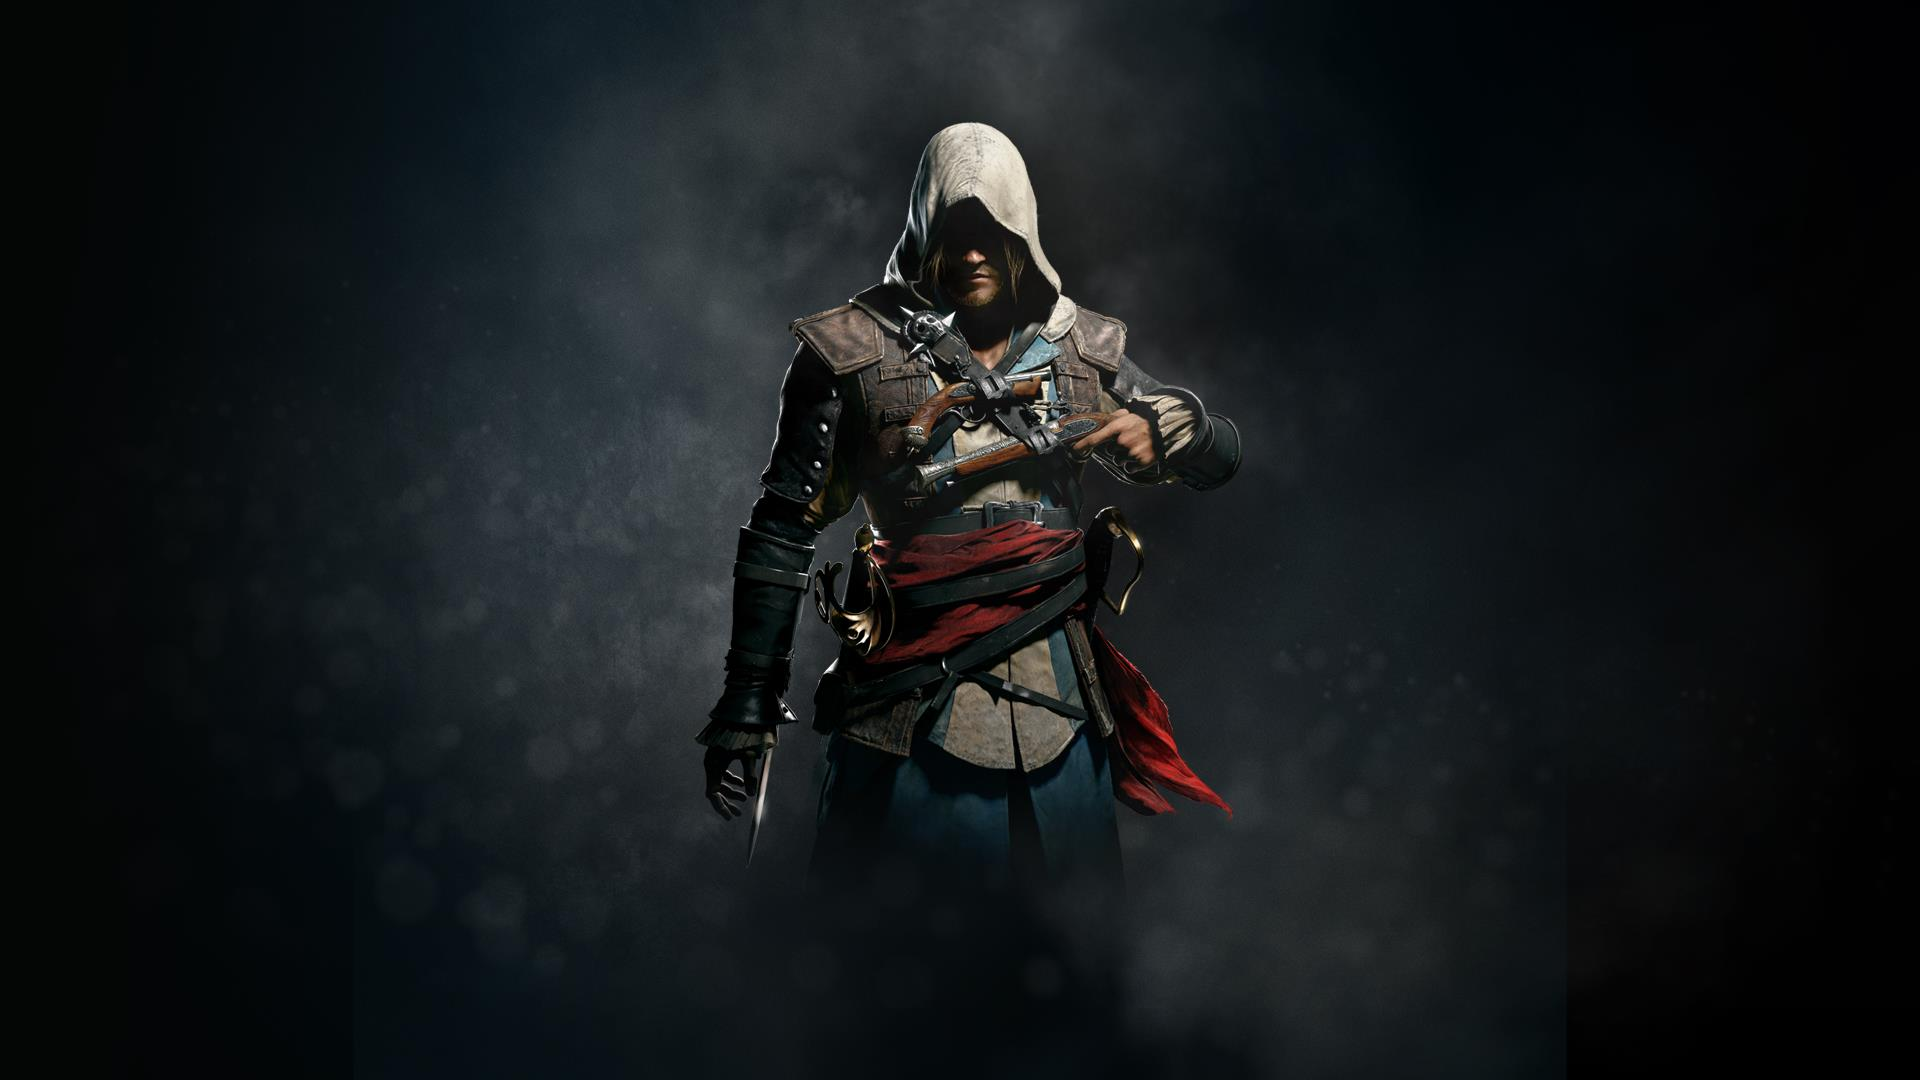 A Pirate's Life For Me in Assassin's Creed IV: Black Flag